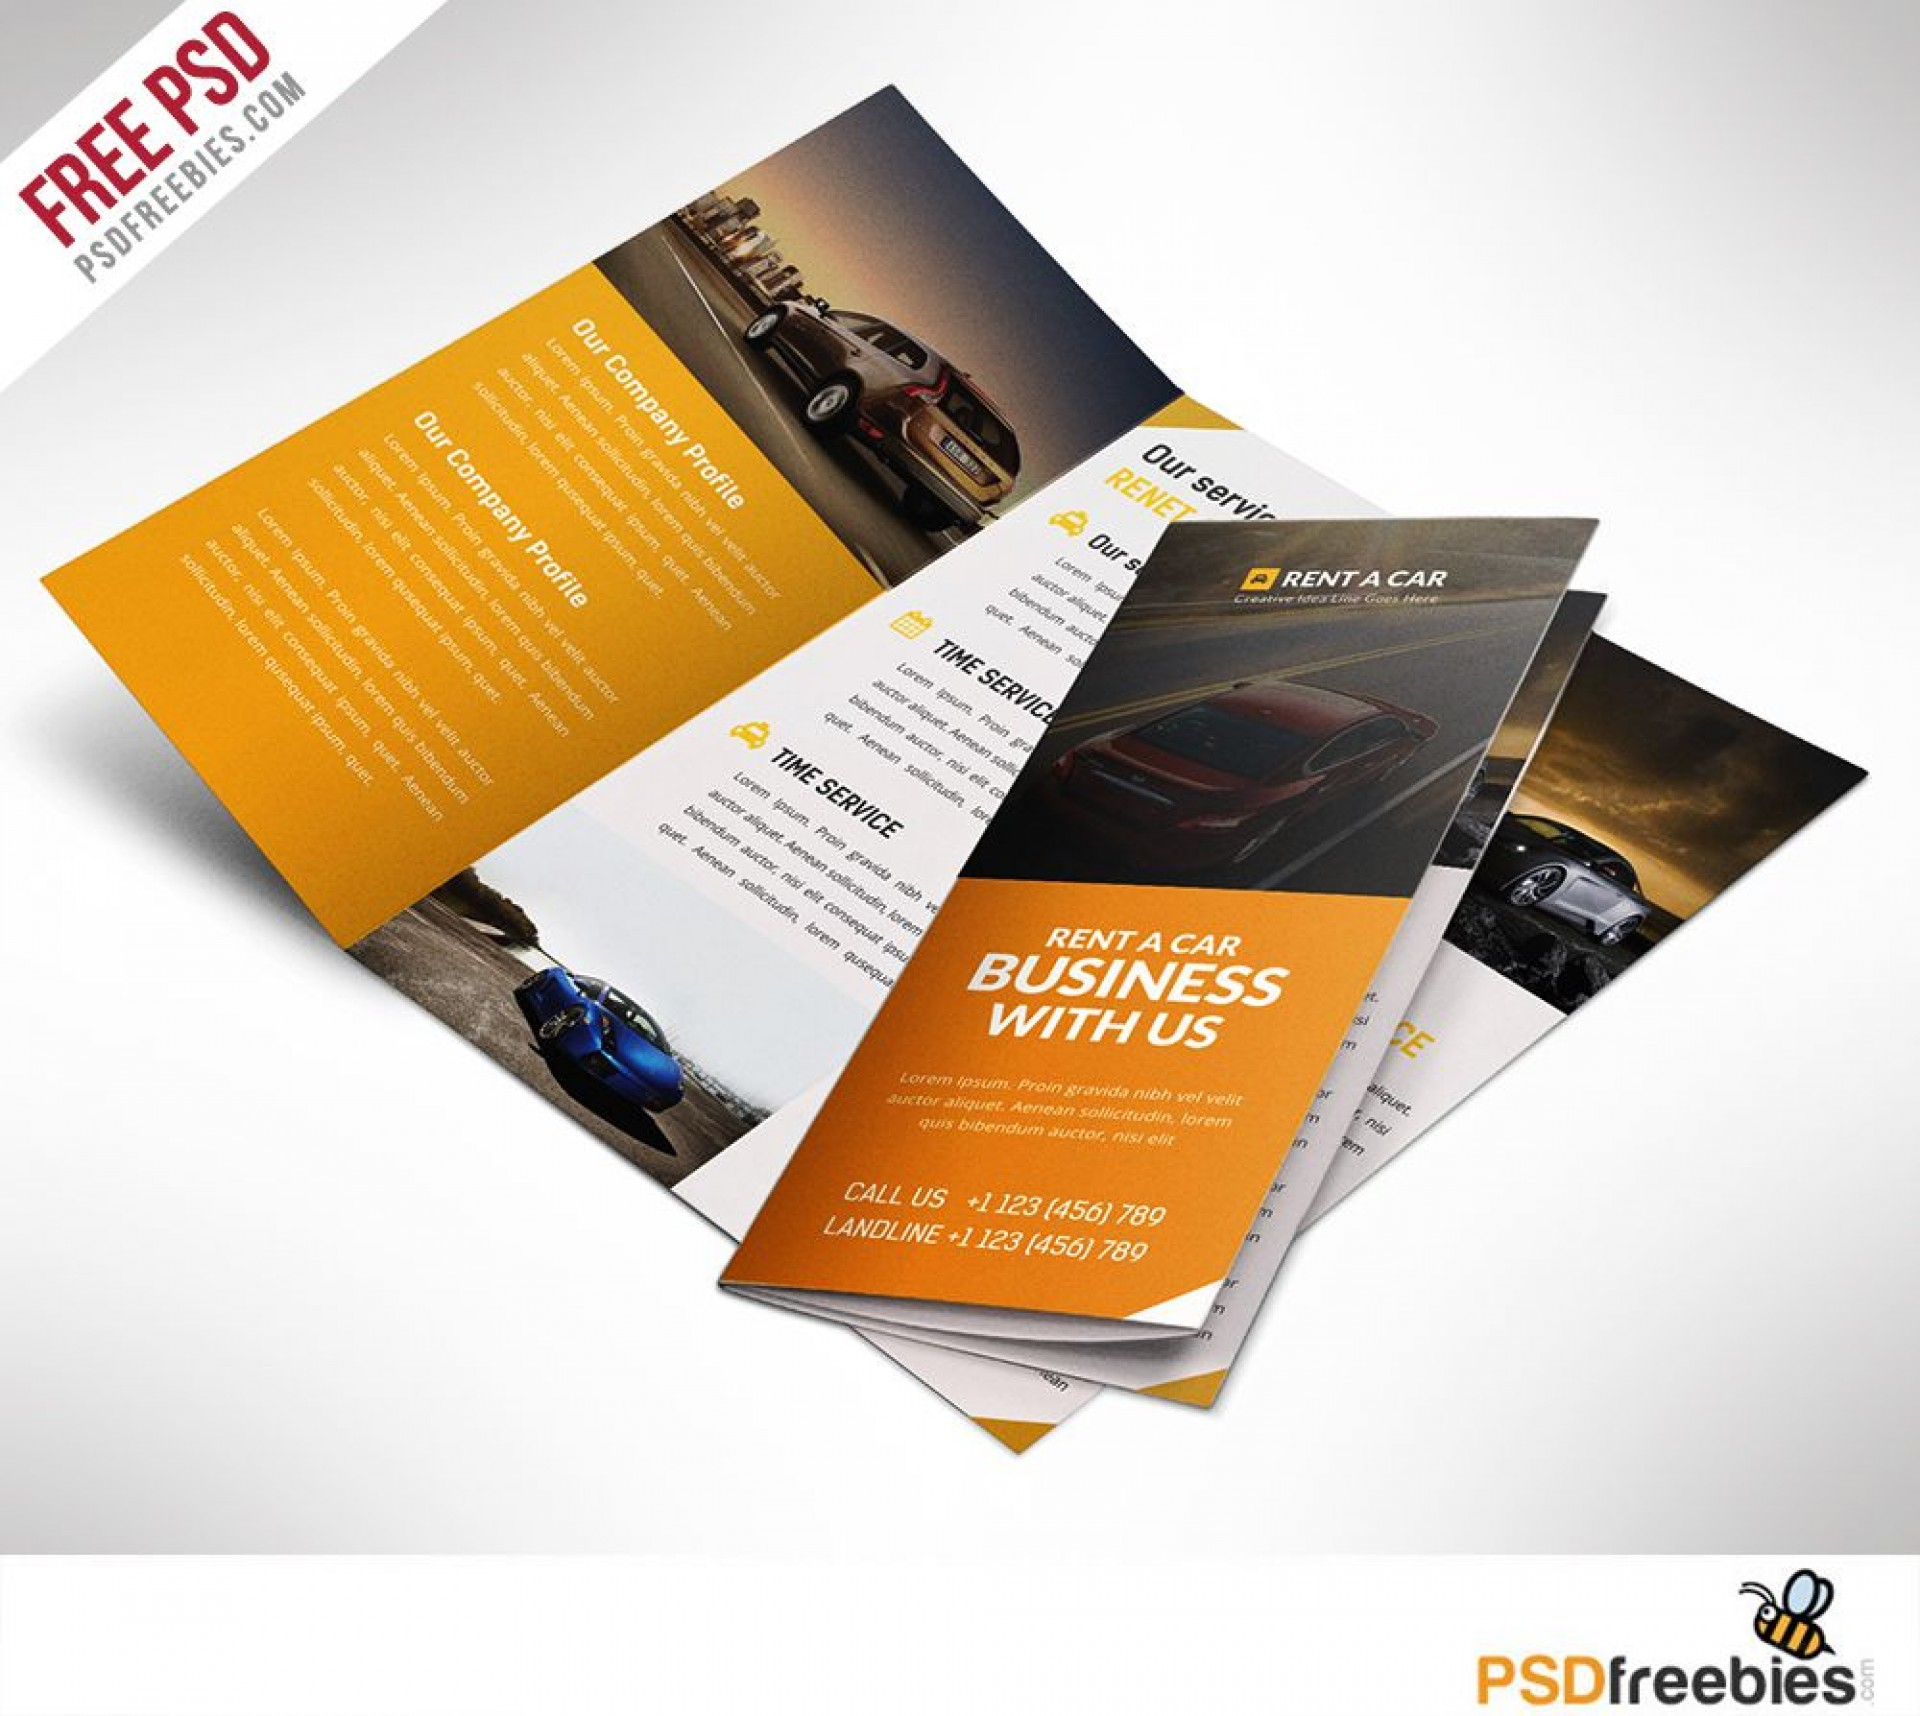 003 Excellent Three Fold Brochure Template Psd Photo  Free 3 A4 Tri Download1920